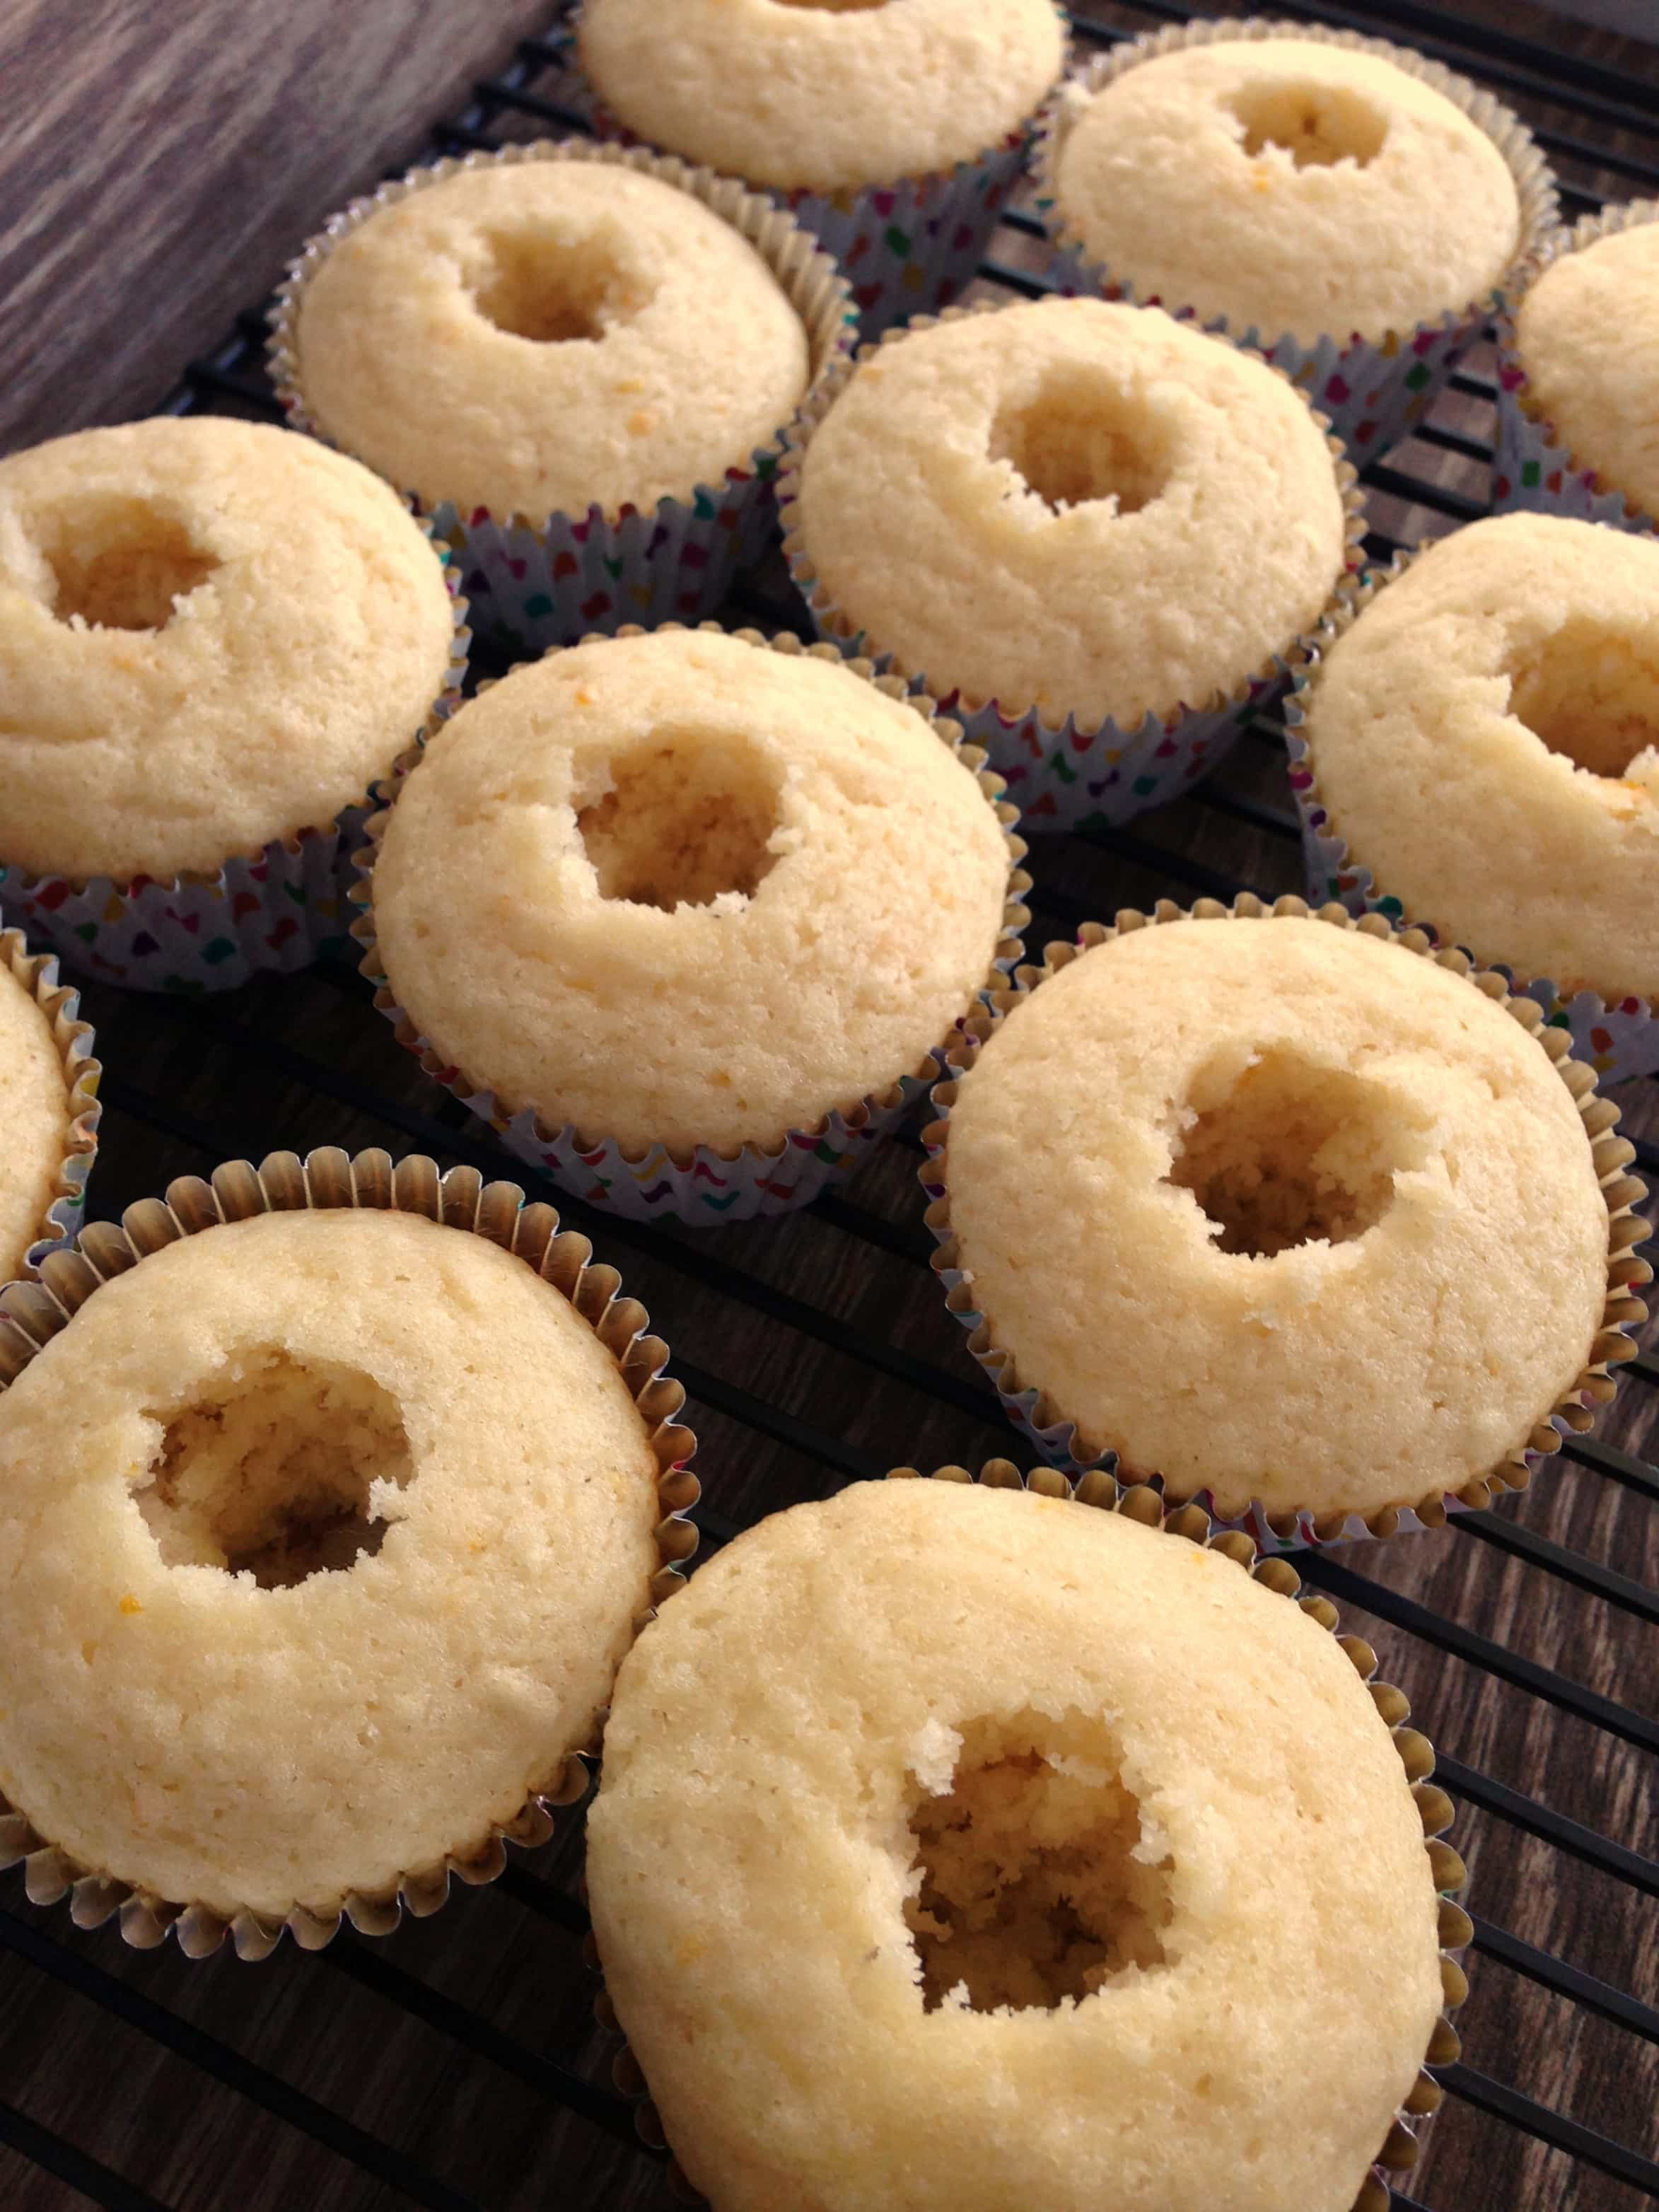 Lemon cupcakes with the centers removed for filling.